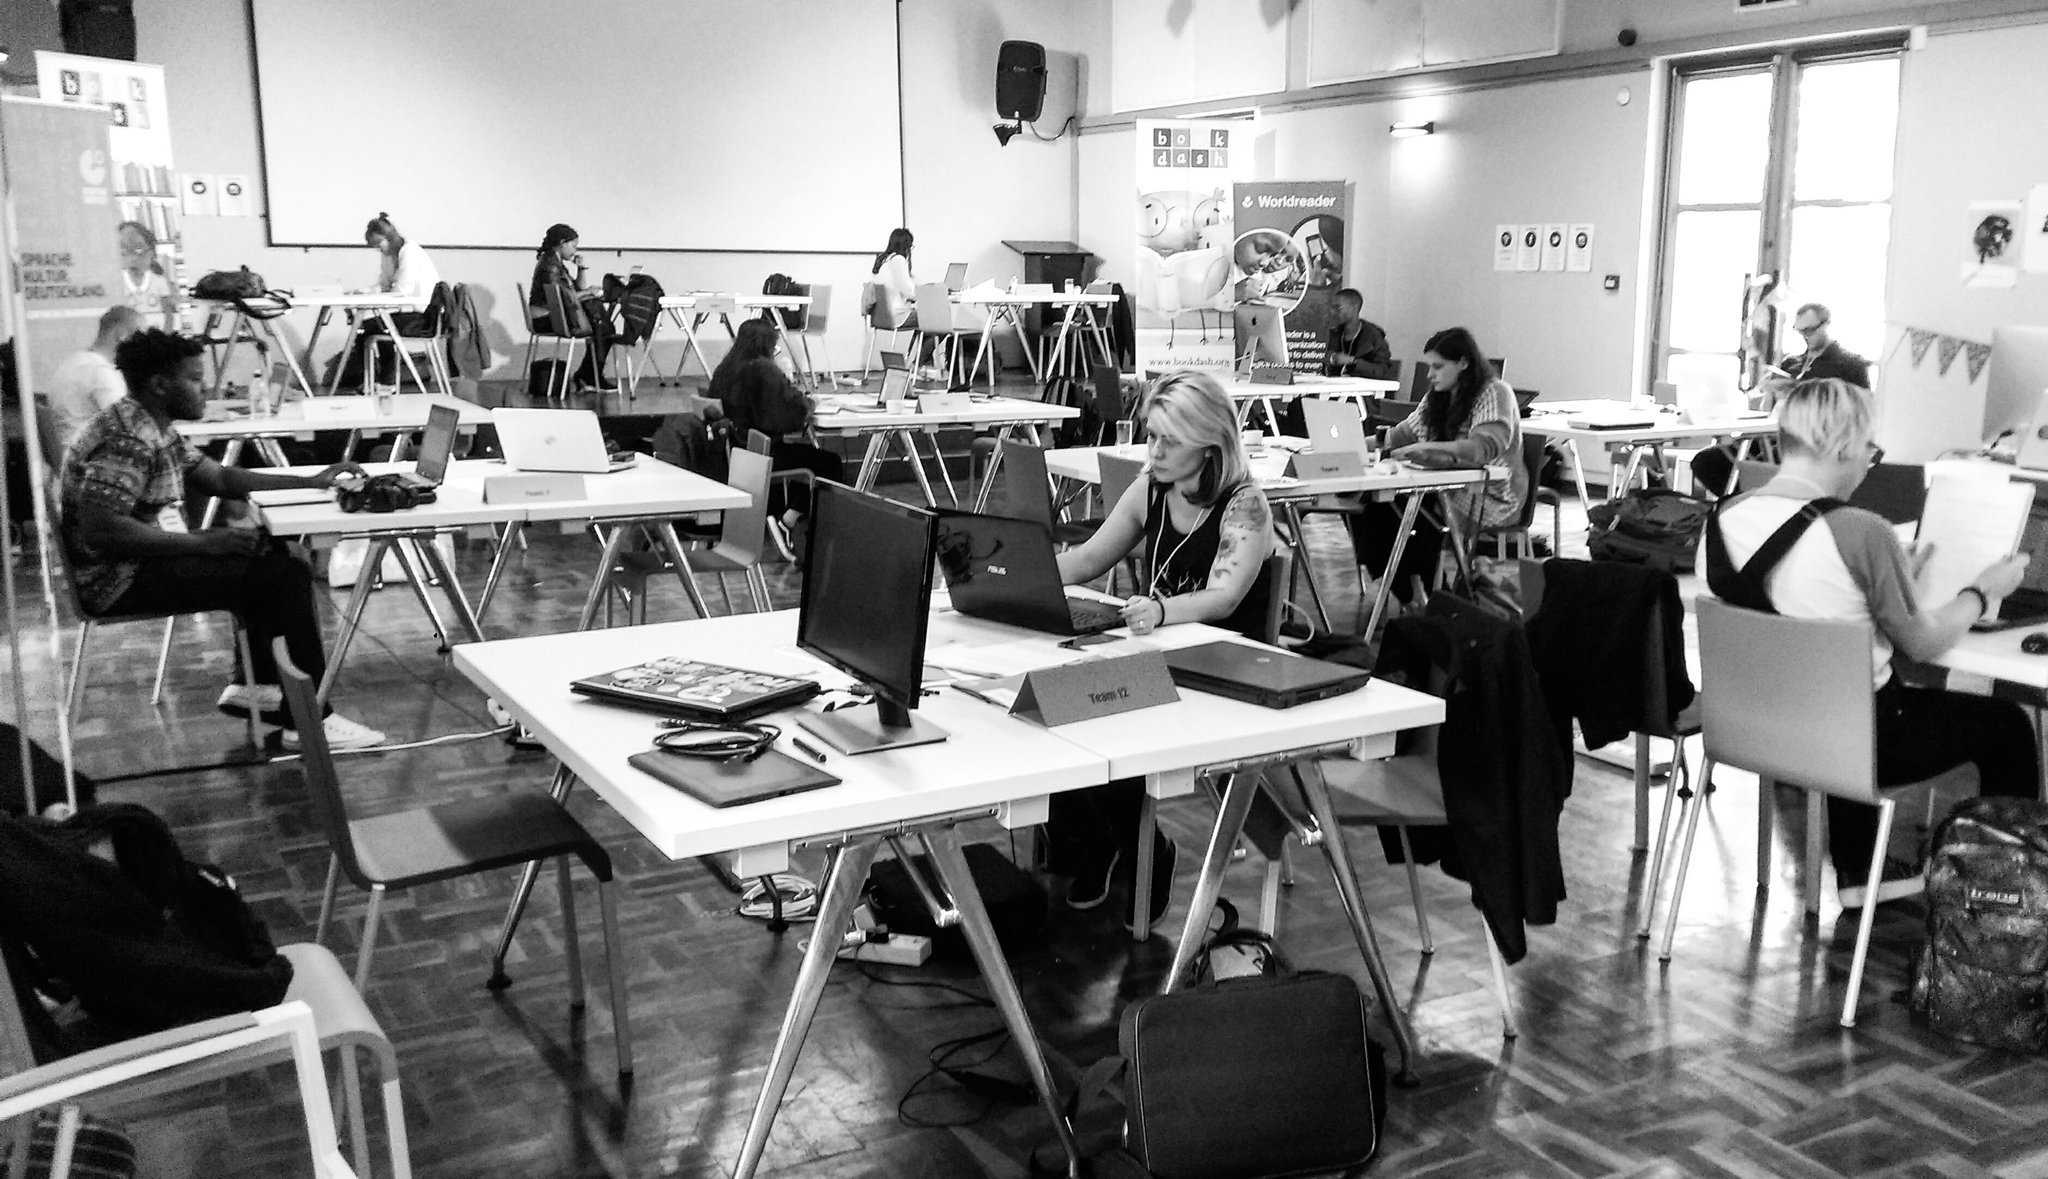 The designers are also hard at work prepping for the (long) day ahead at @bookdash. #BookDashPlus #BookDash @worldreaders @goethejoburg https://t.co/CEFo8nMIf4